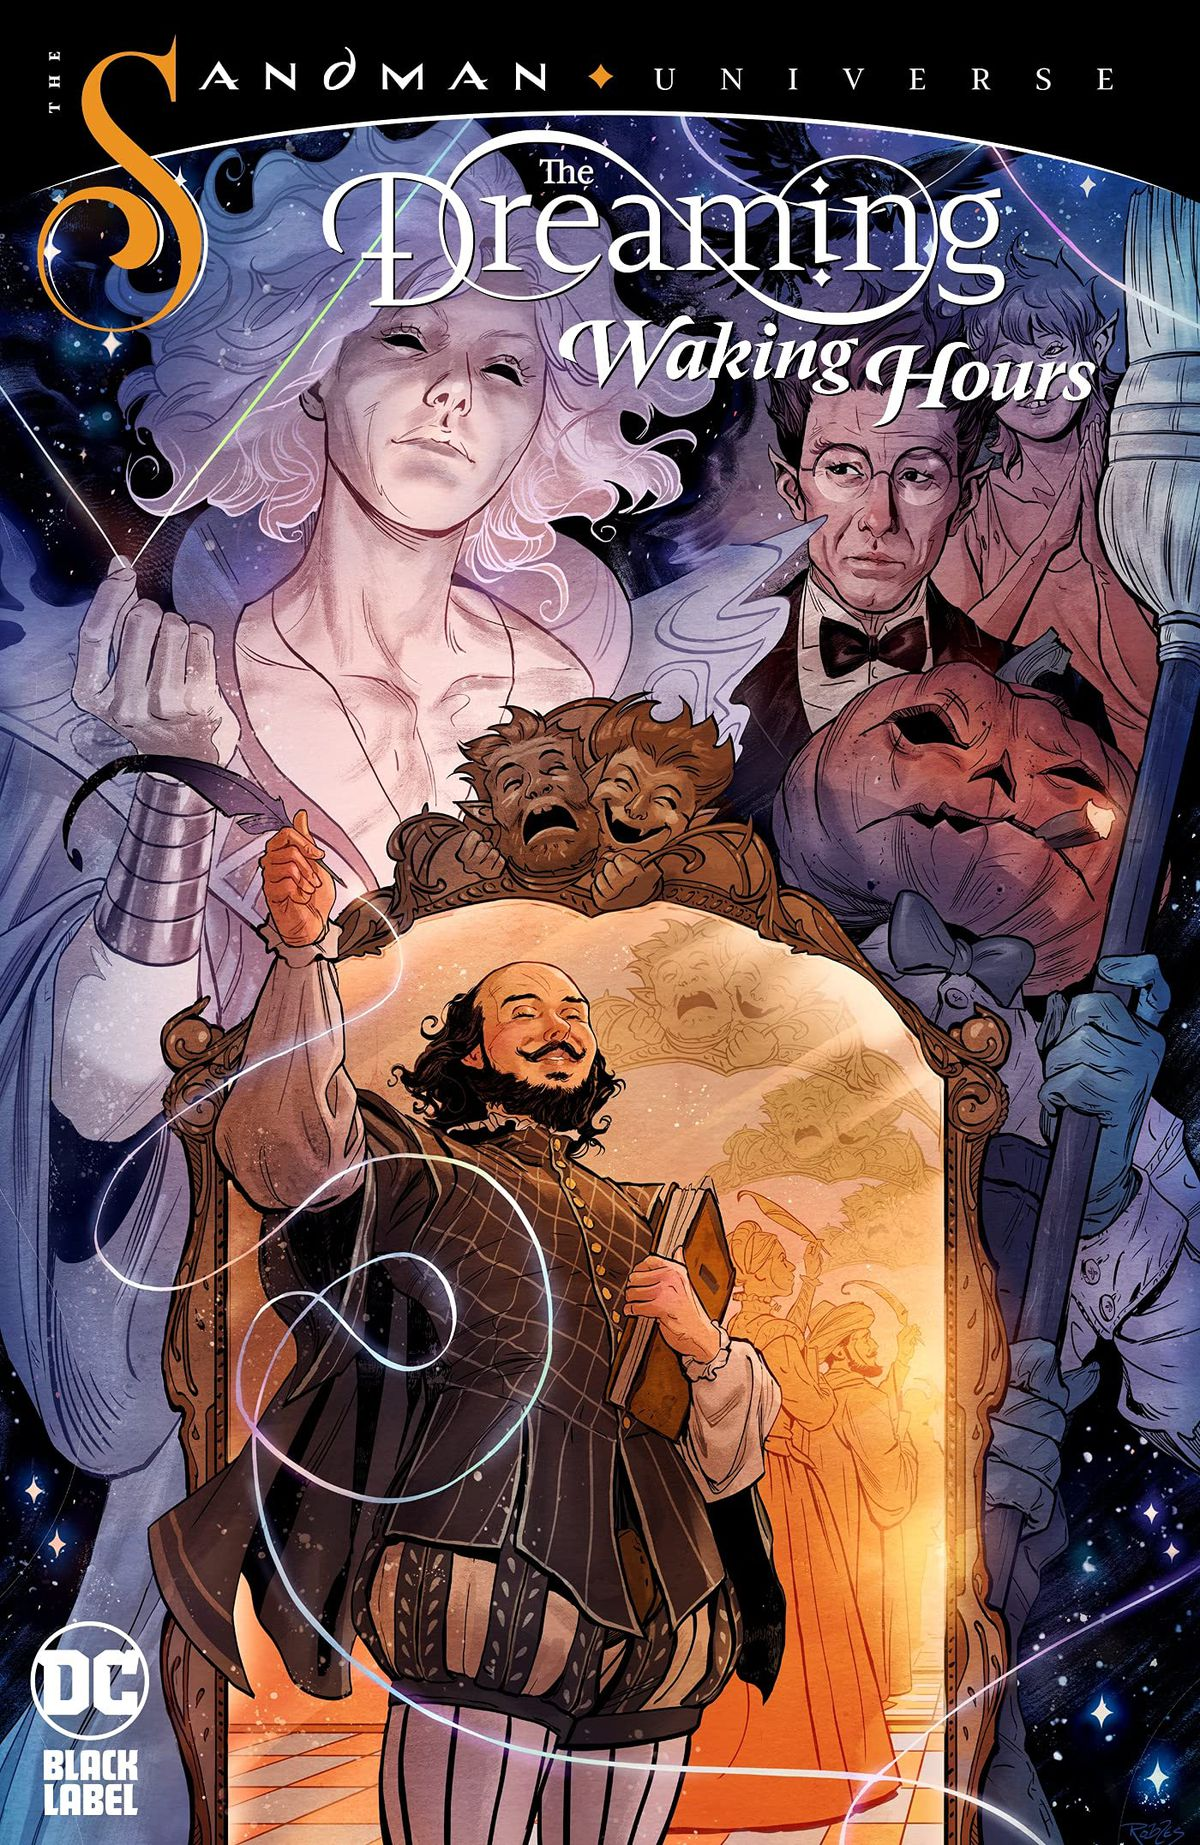 Denizens of the Dreaming watch over mirror, beside which stands William Shakespeare, greeting the reader on the cover of The Dreaming: Waking Hours (2021).